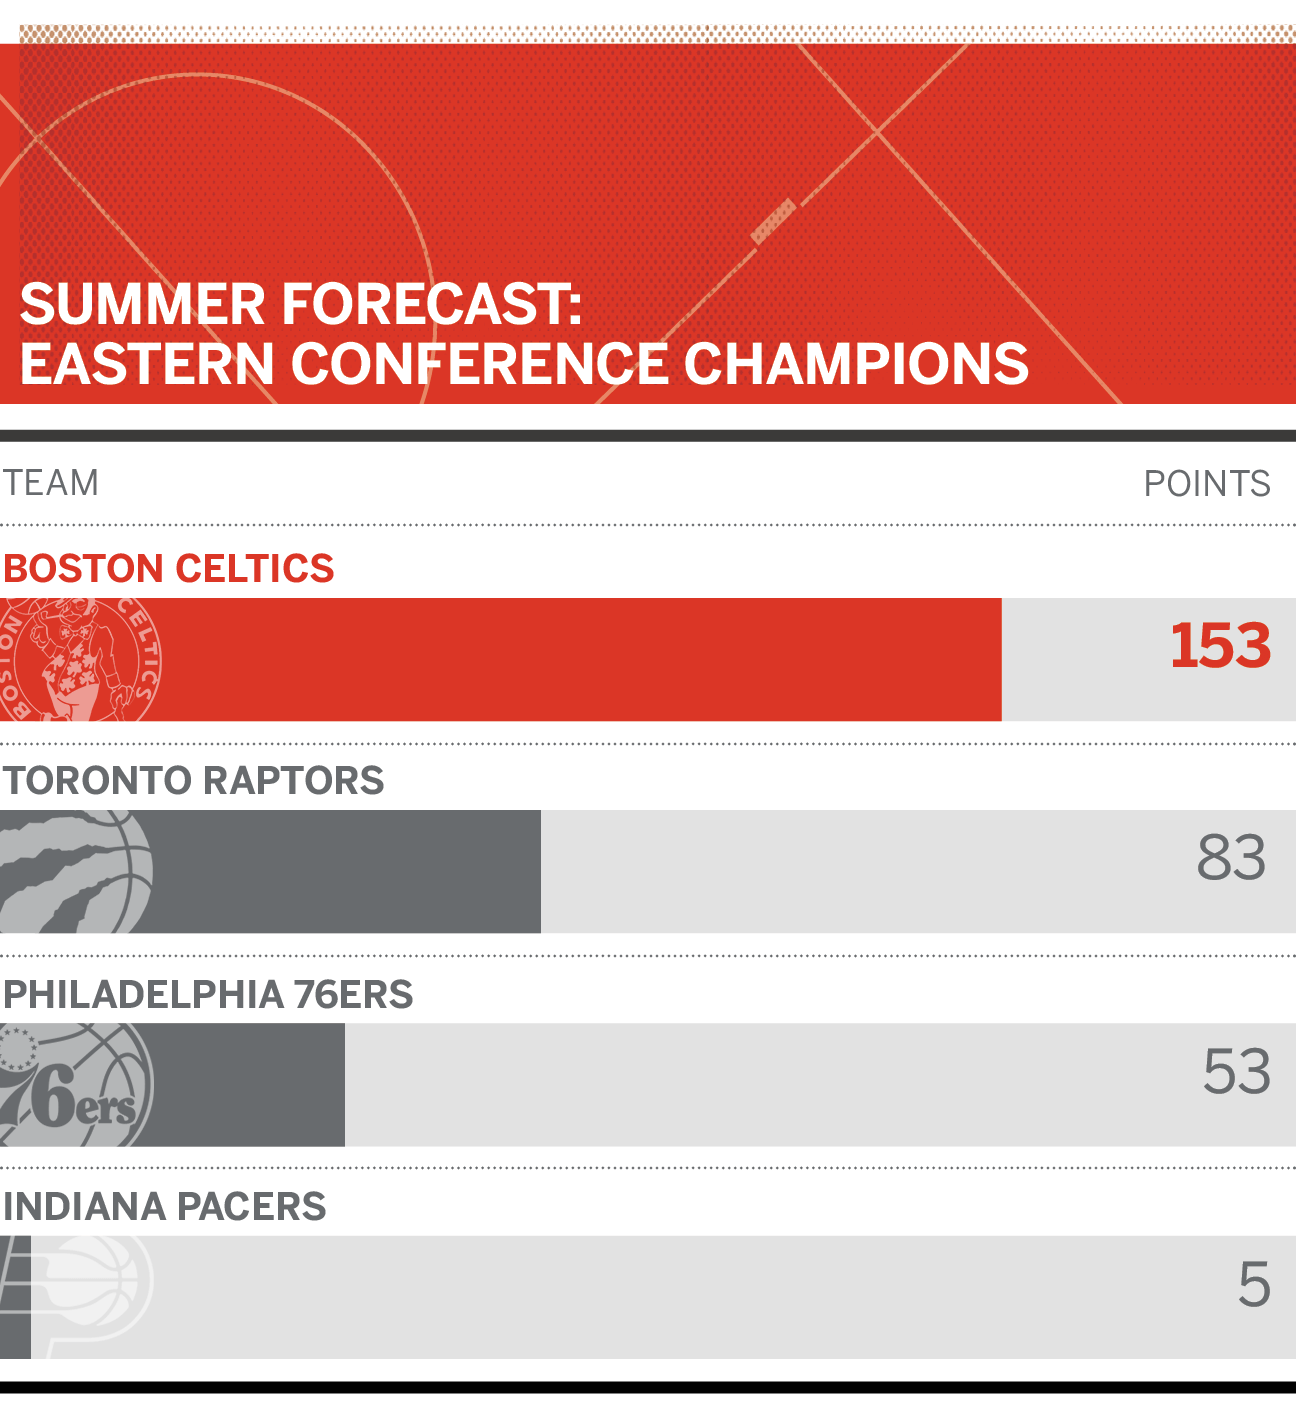 72d2429bd25a NBA champs predictions - ESPN Summer Forecast